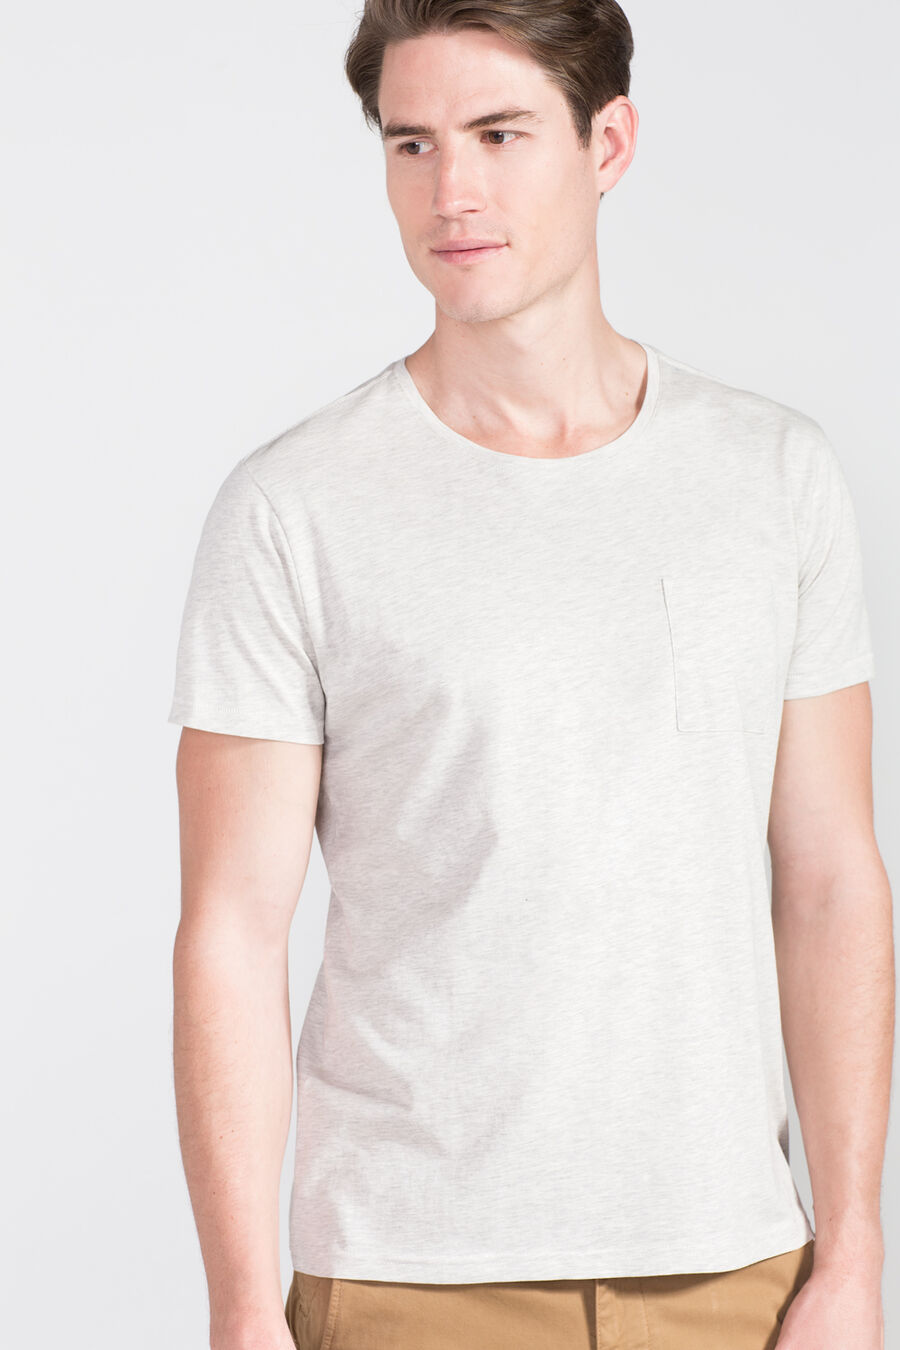 T-shirt with pocket